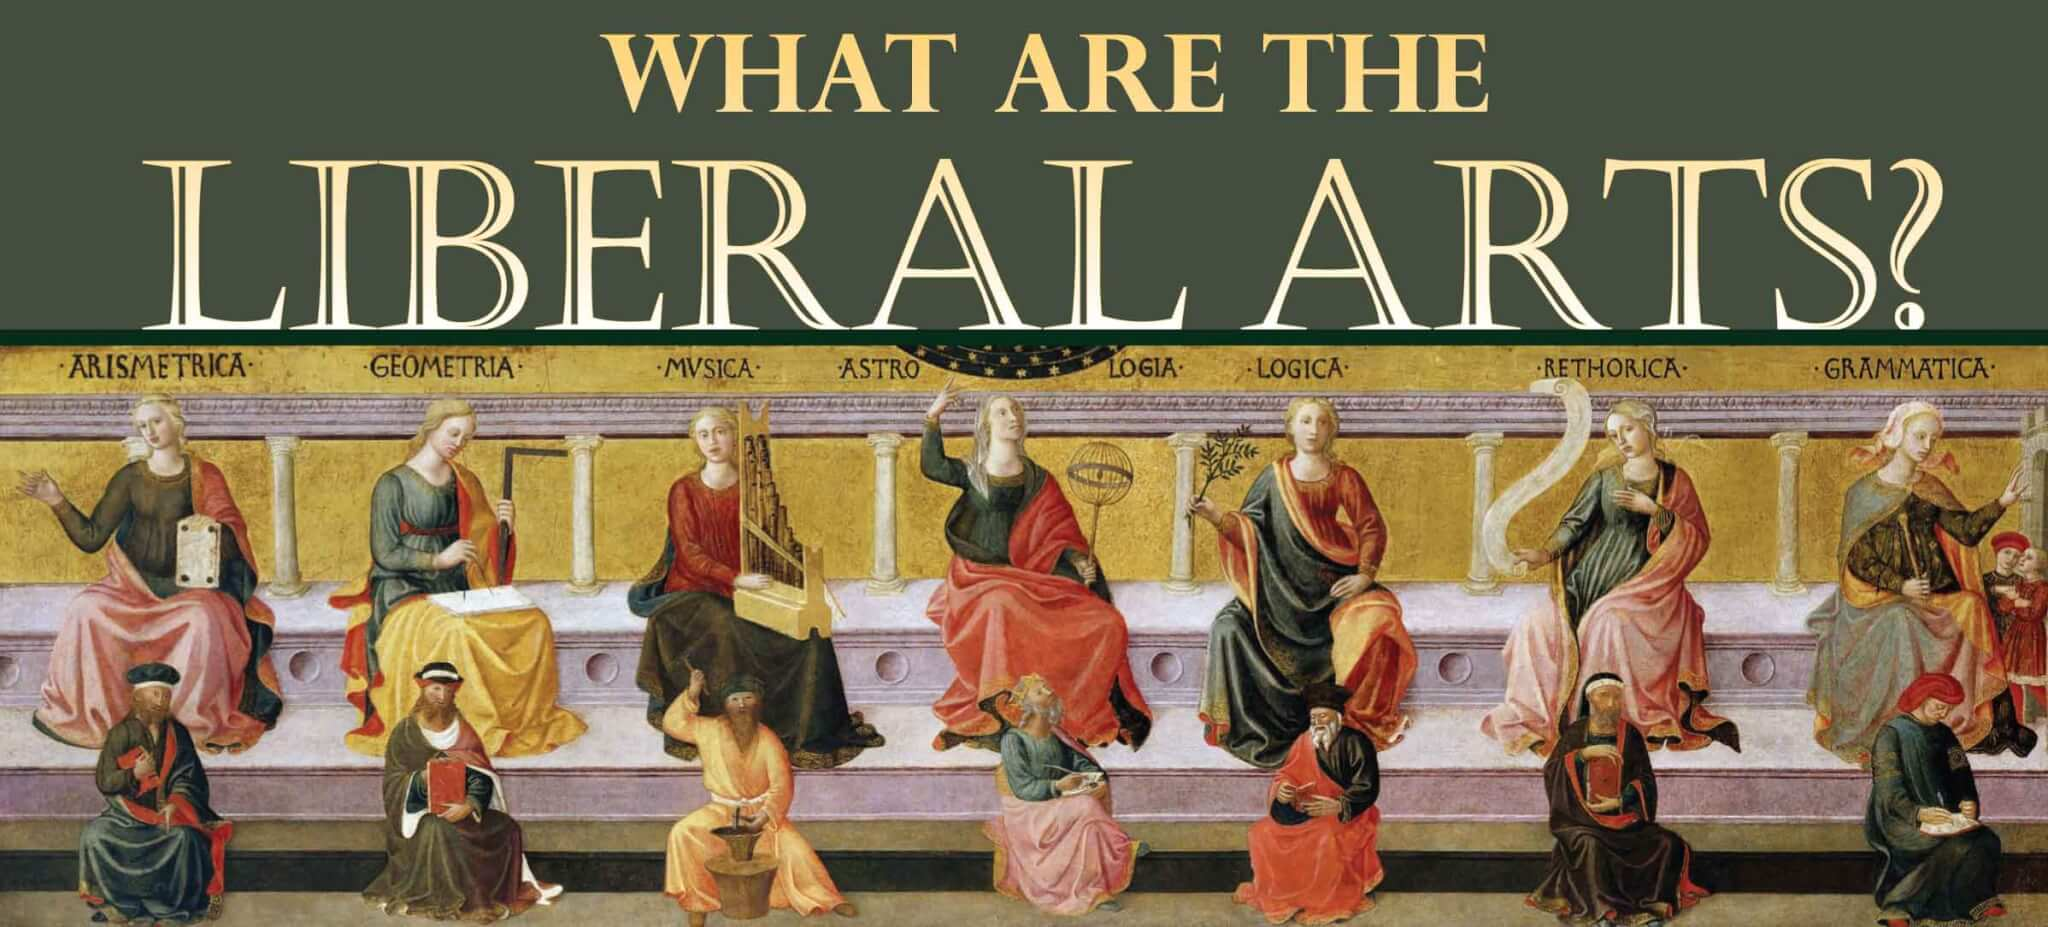 what are the liberal arts memoria press what are the liberal arts banner